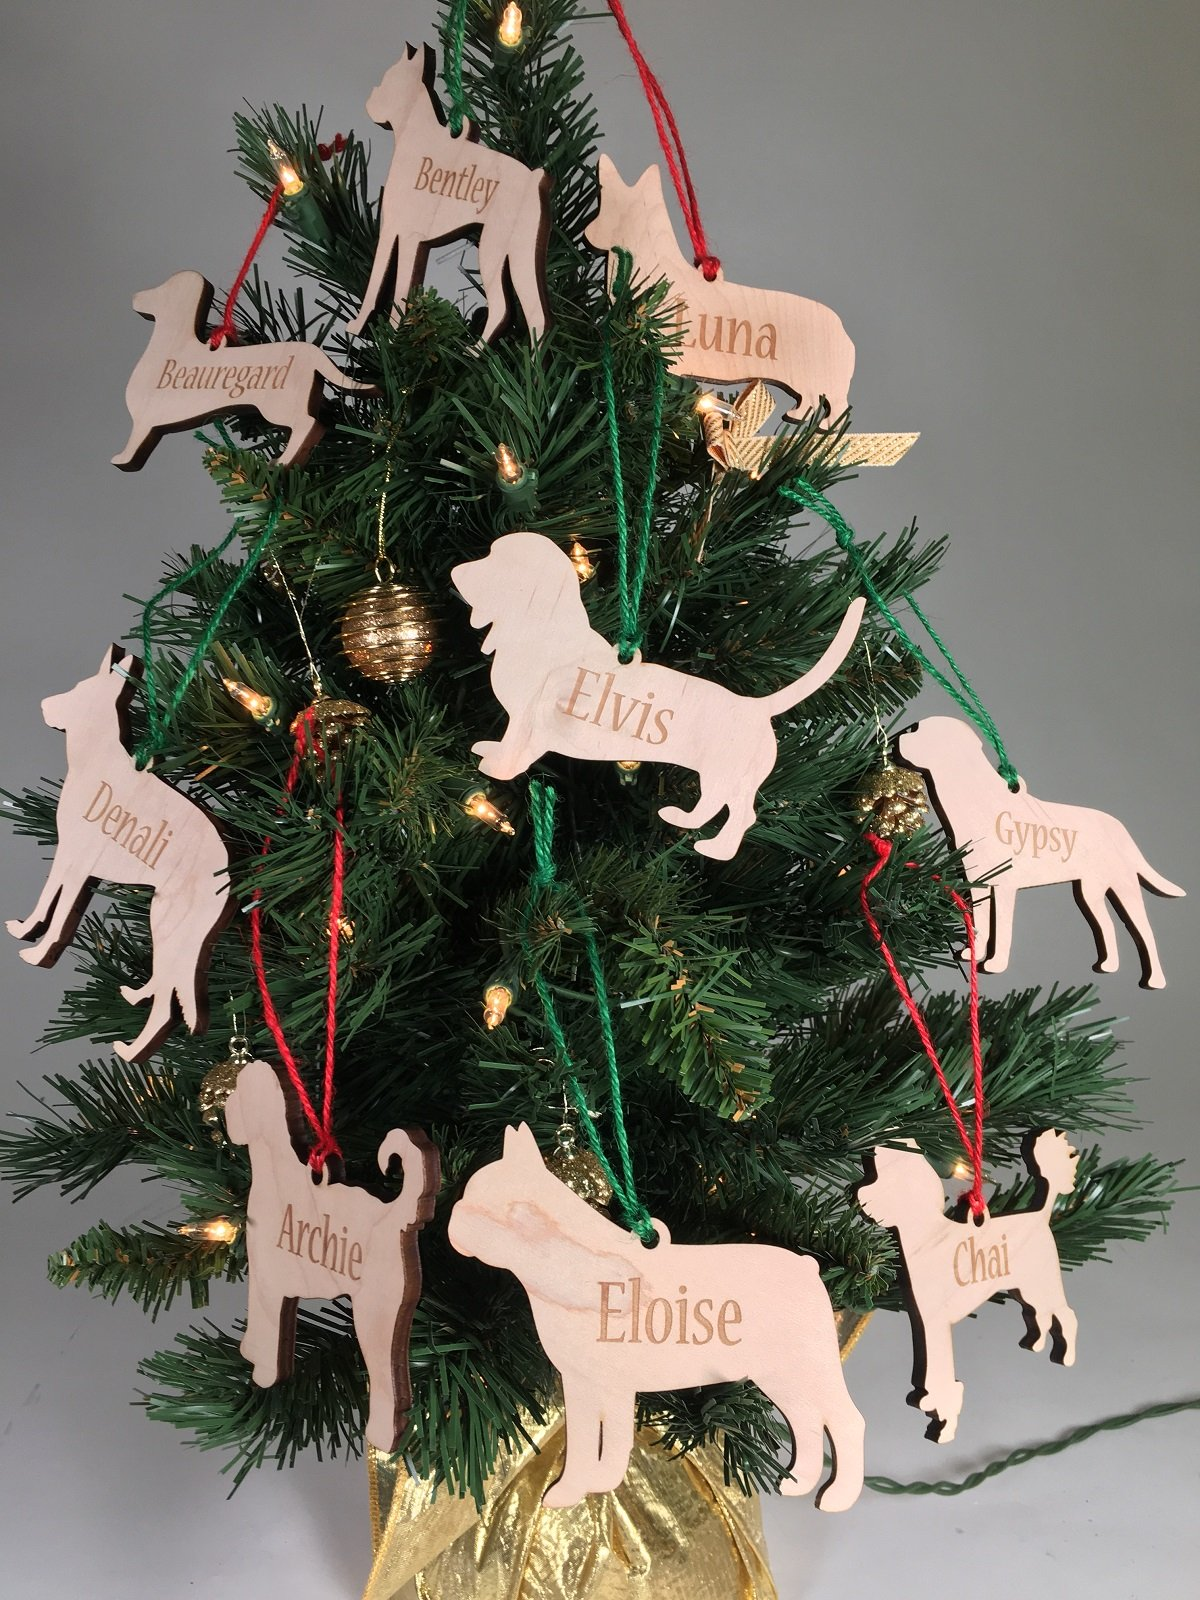 Christmas Ornaments With Names On Them.Personalized Wooden Dog Ornament